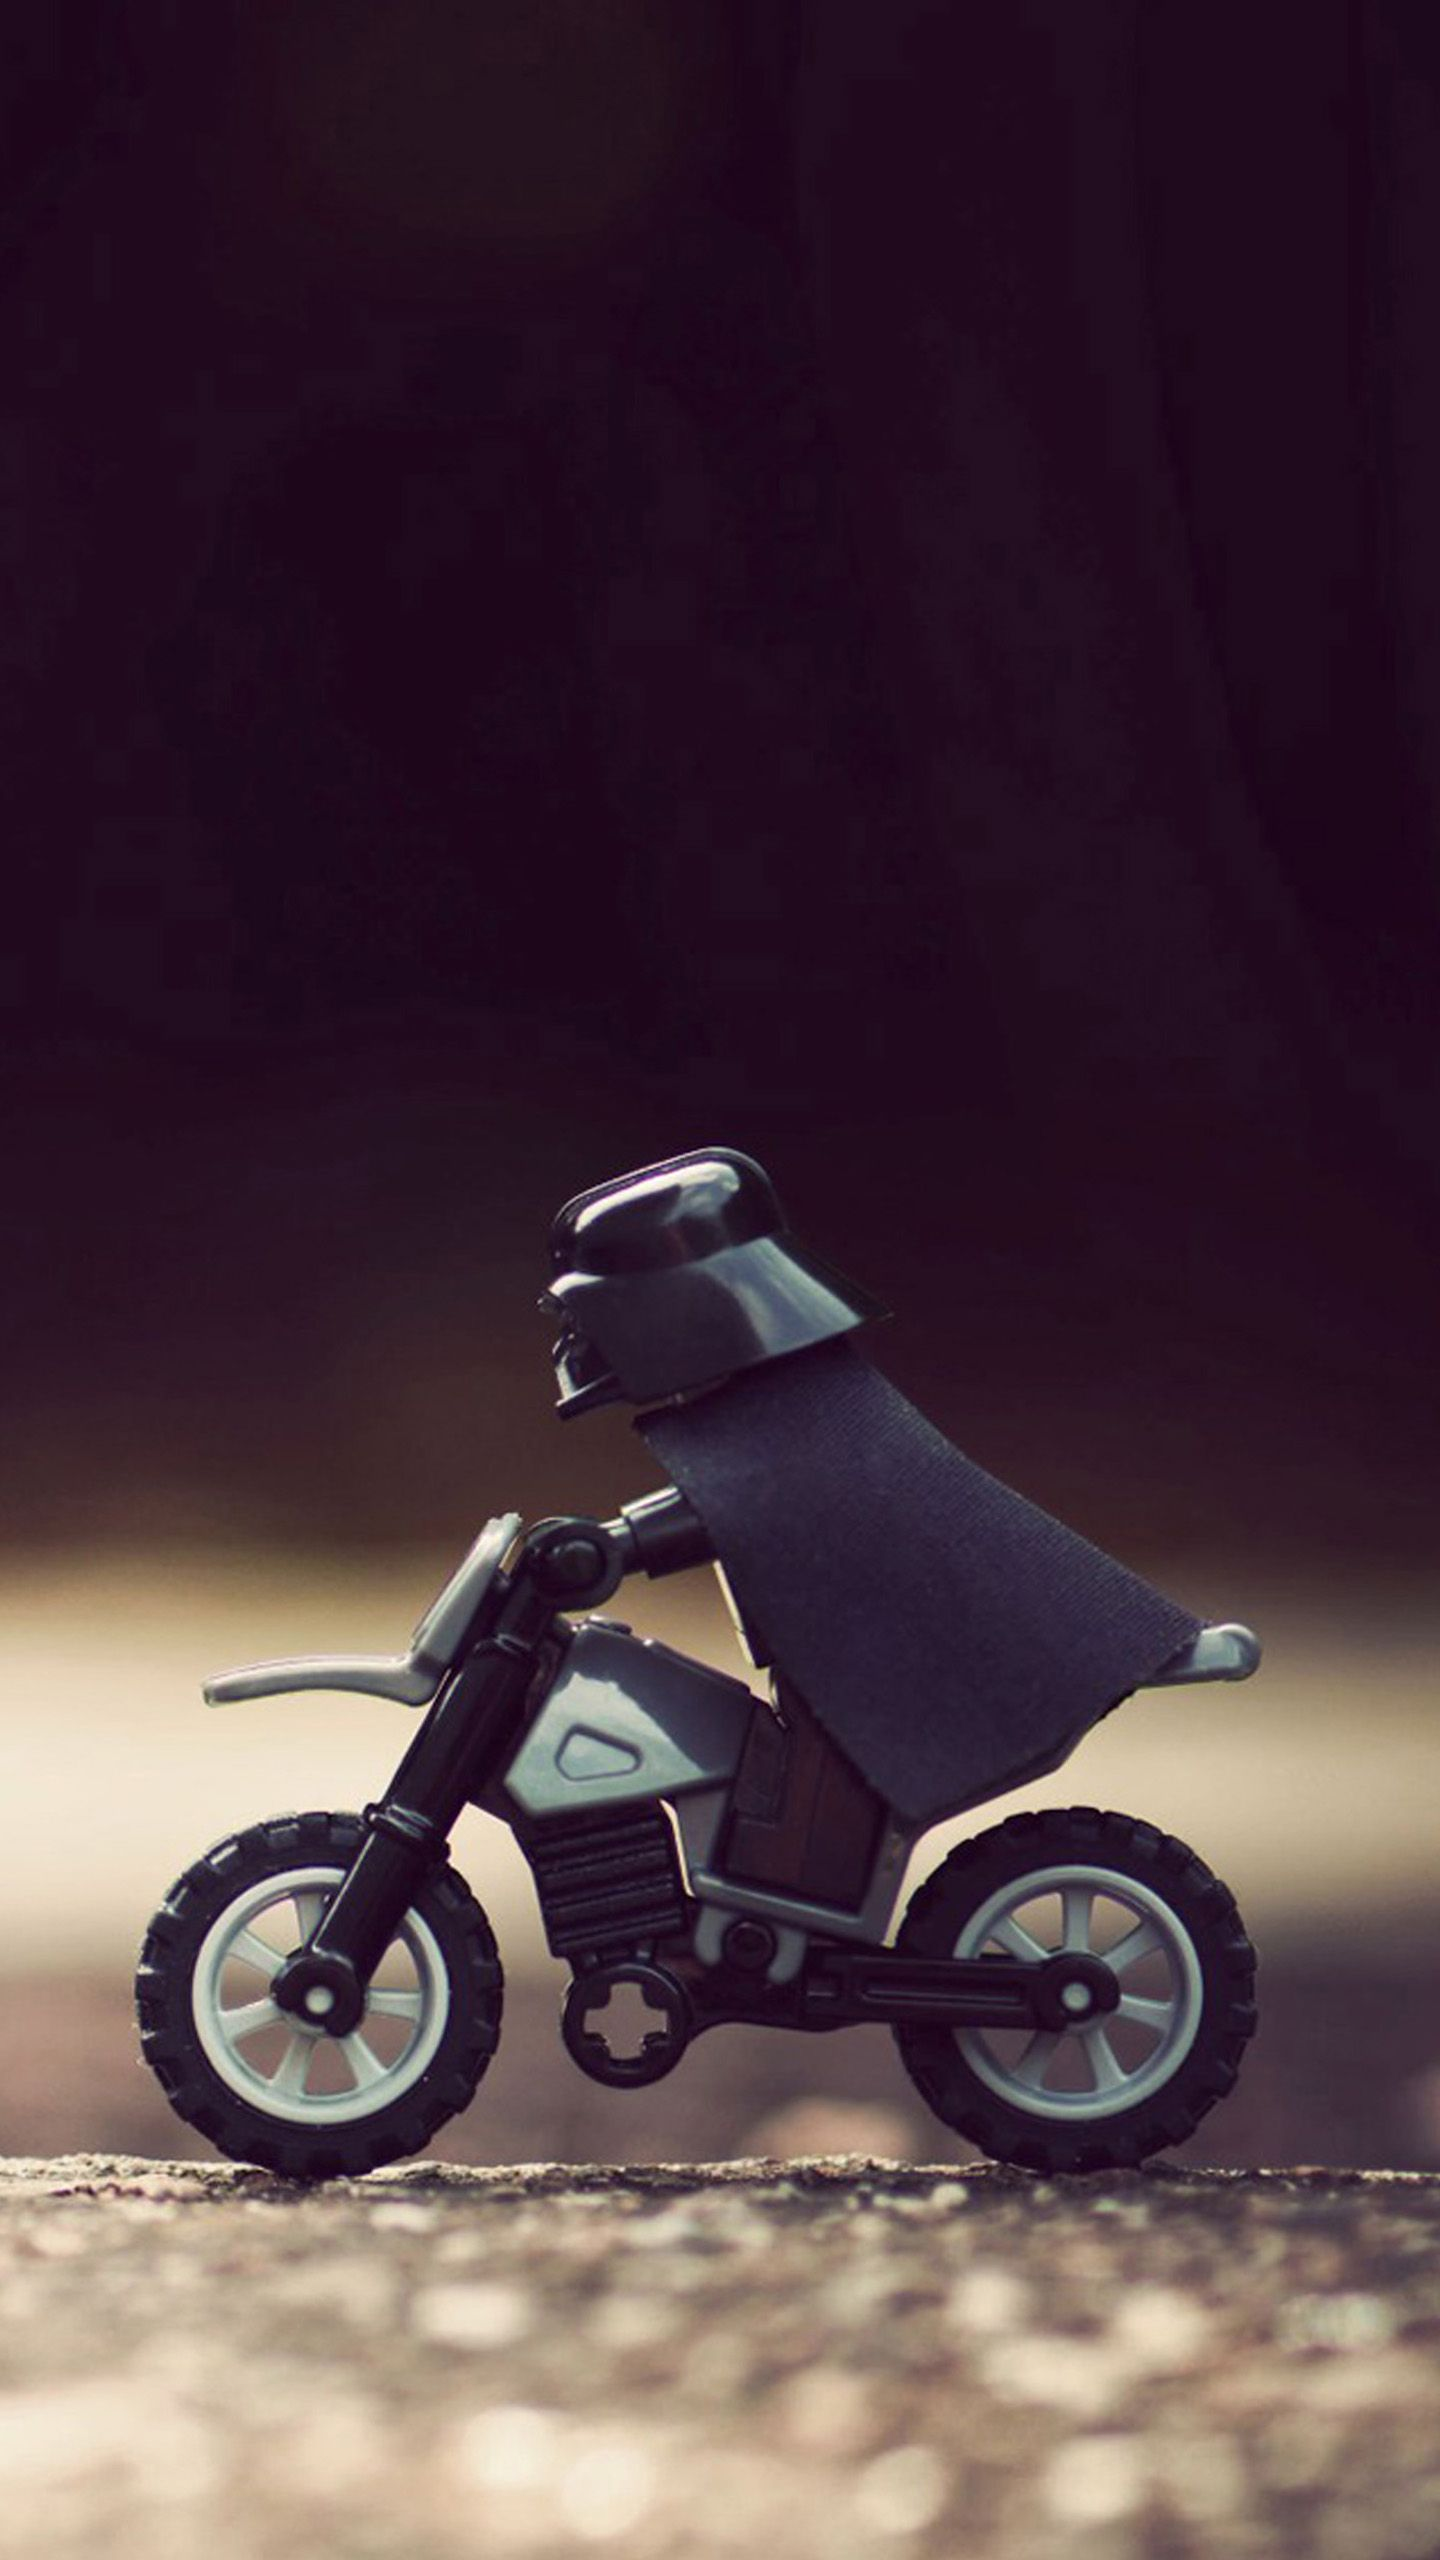 lego star wars wallpapers for galaxy s6 (1440×2560) | fiction